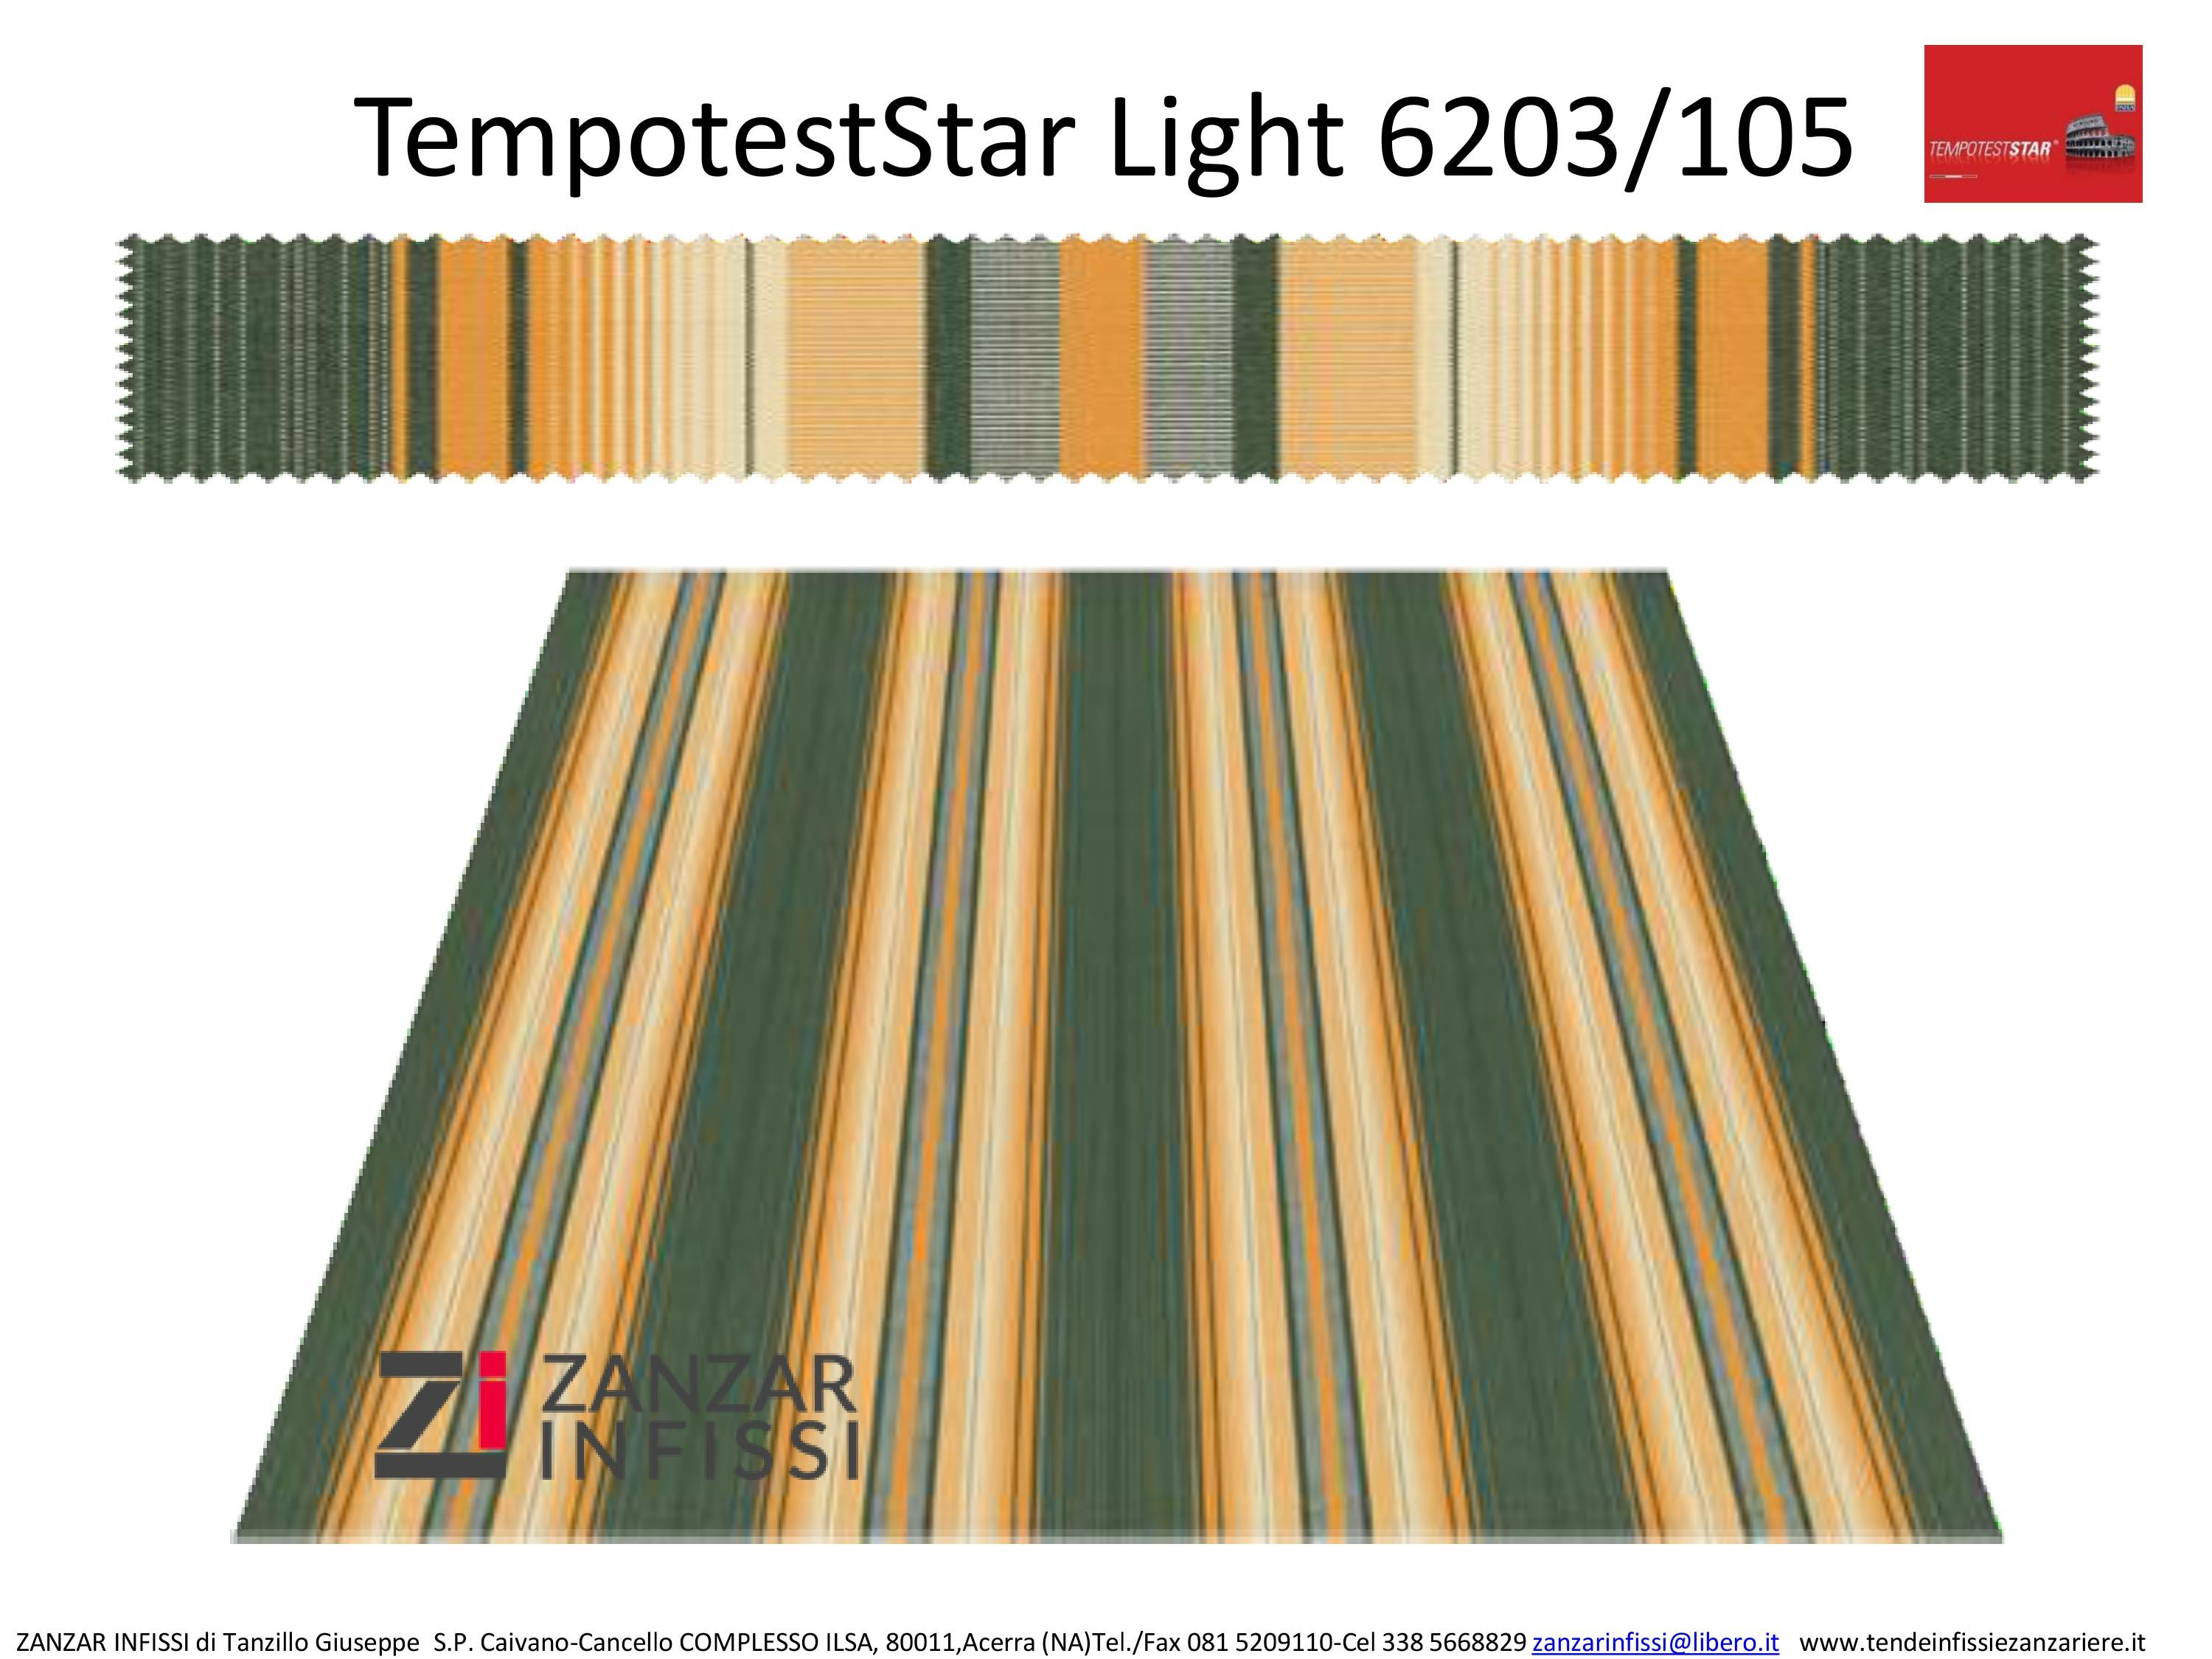 Tempotest star light 6203/105